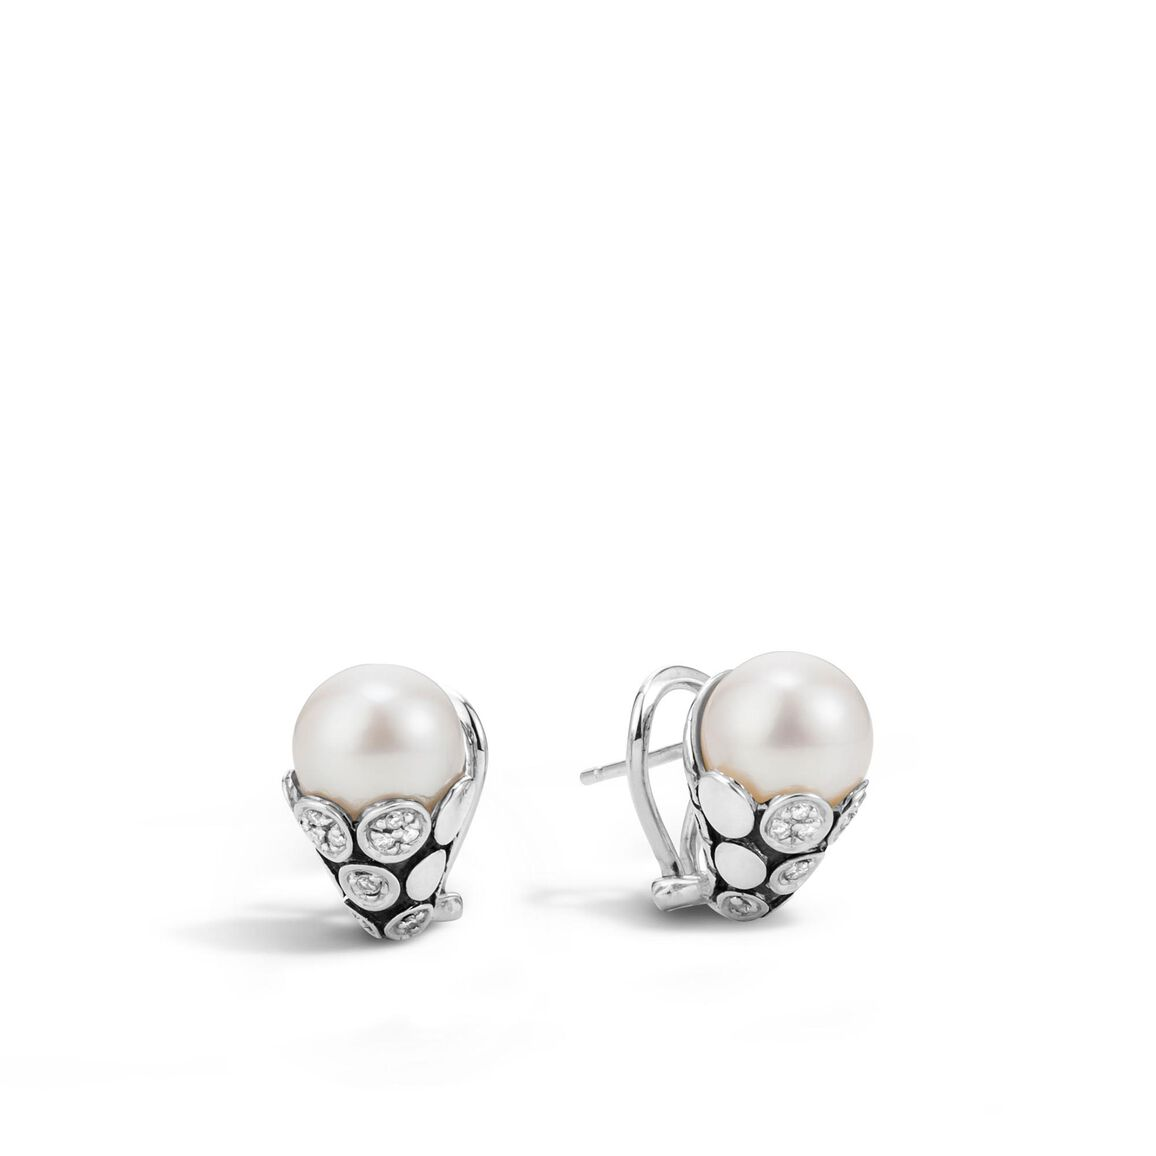 Dot Buddha Belly Earring in Silver with 10MM Pearl, Diamonds